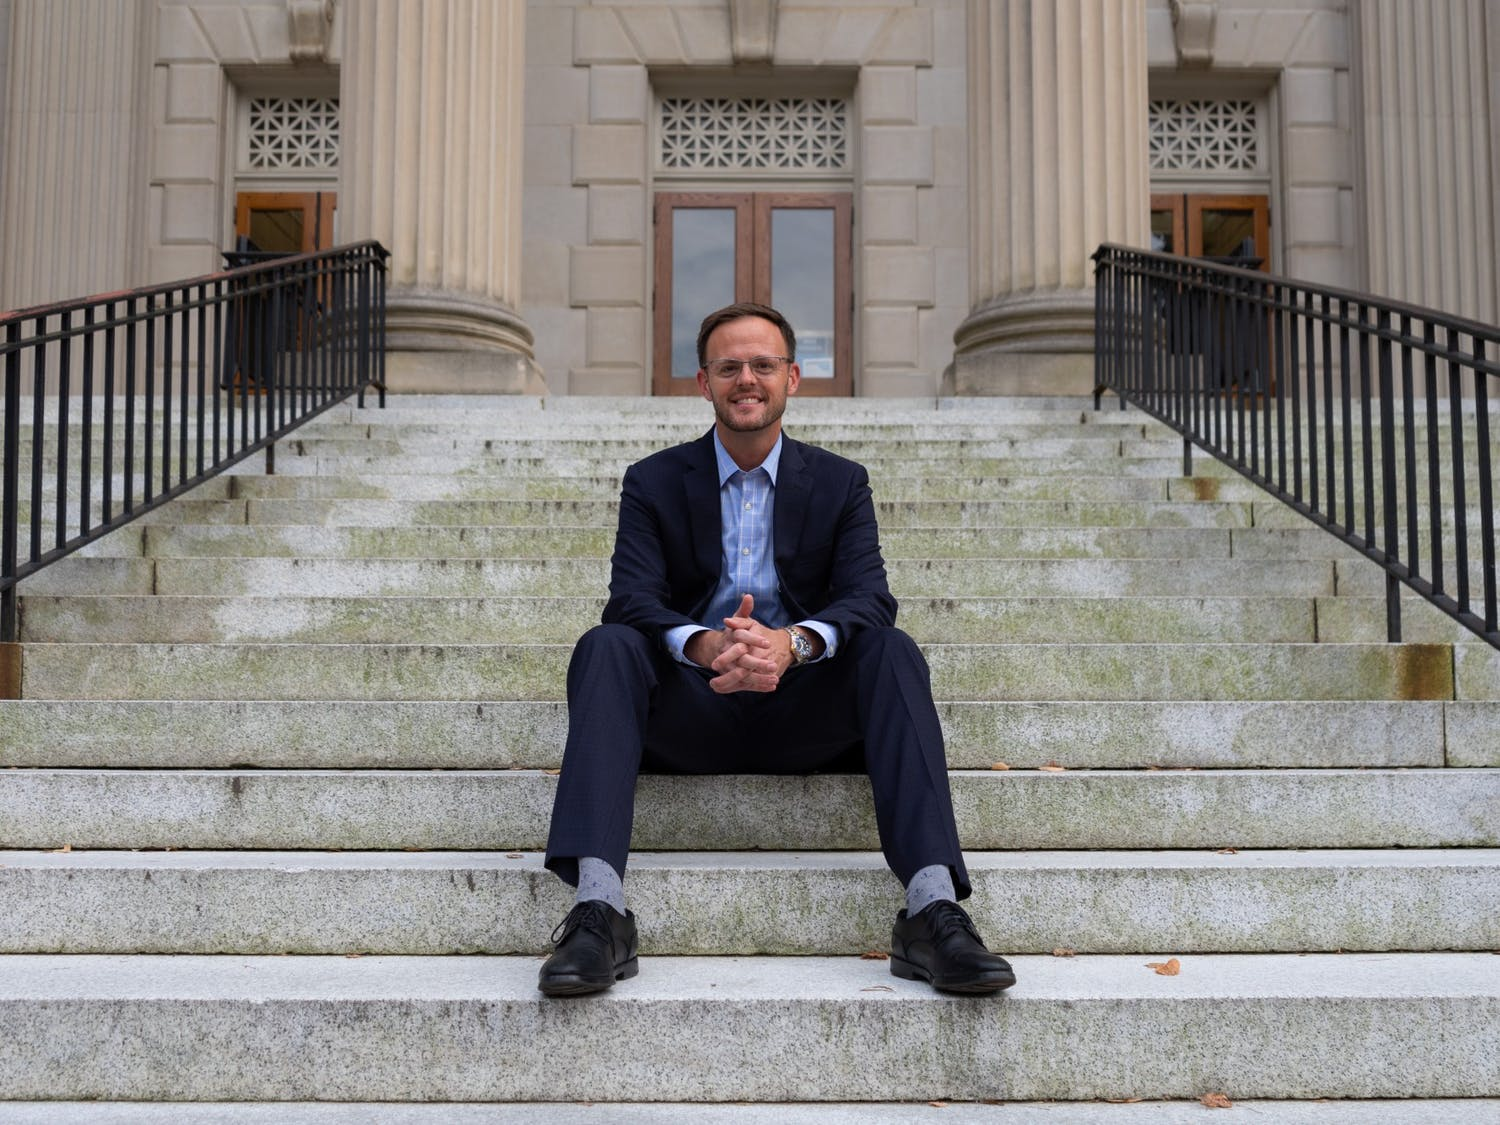 Andy Jenks poses for a portrait on the steps of Wilson Library on Sept. 21.